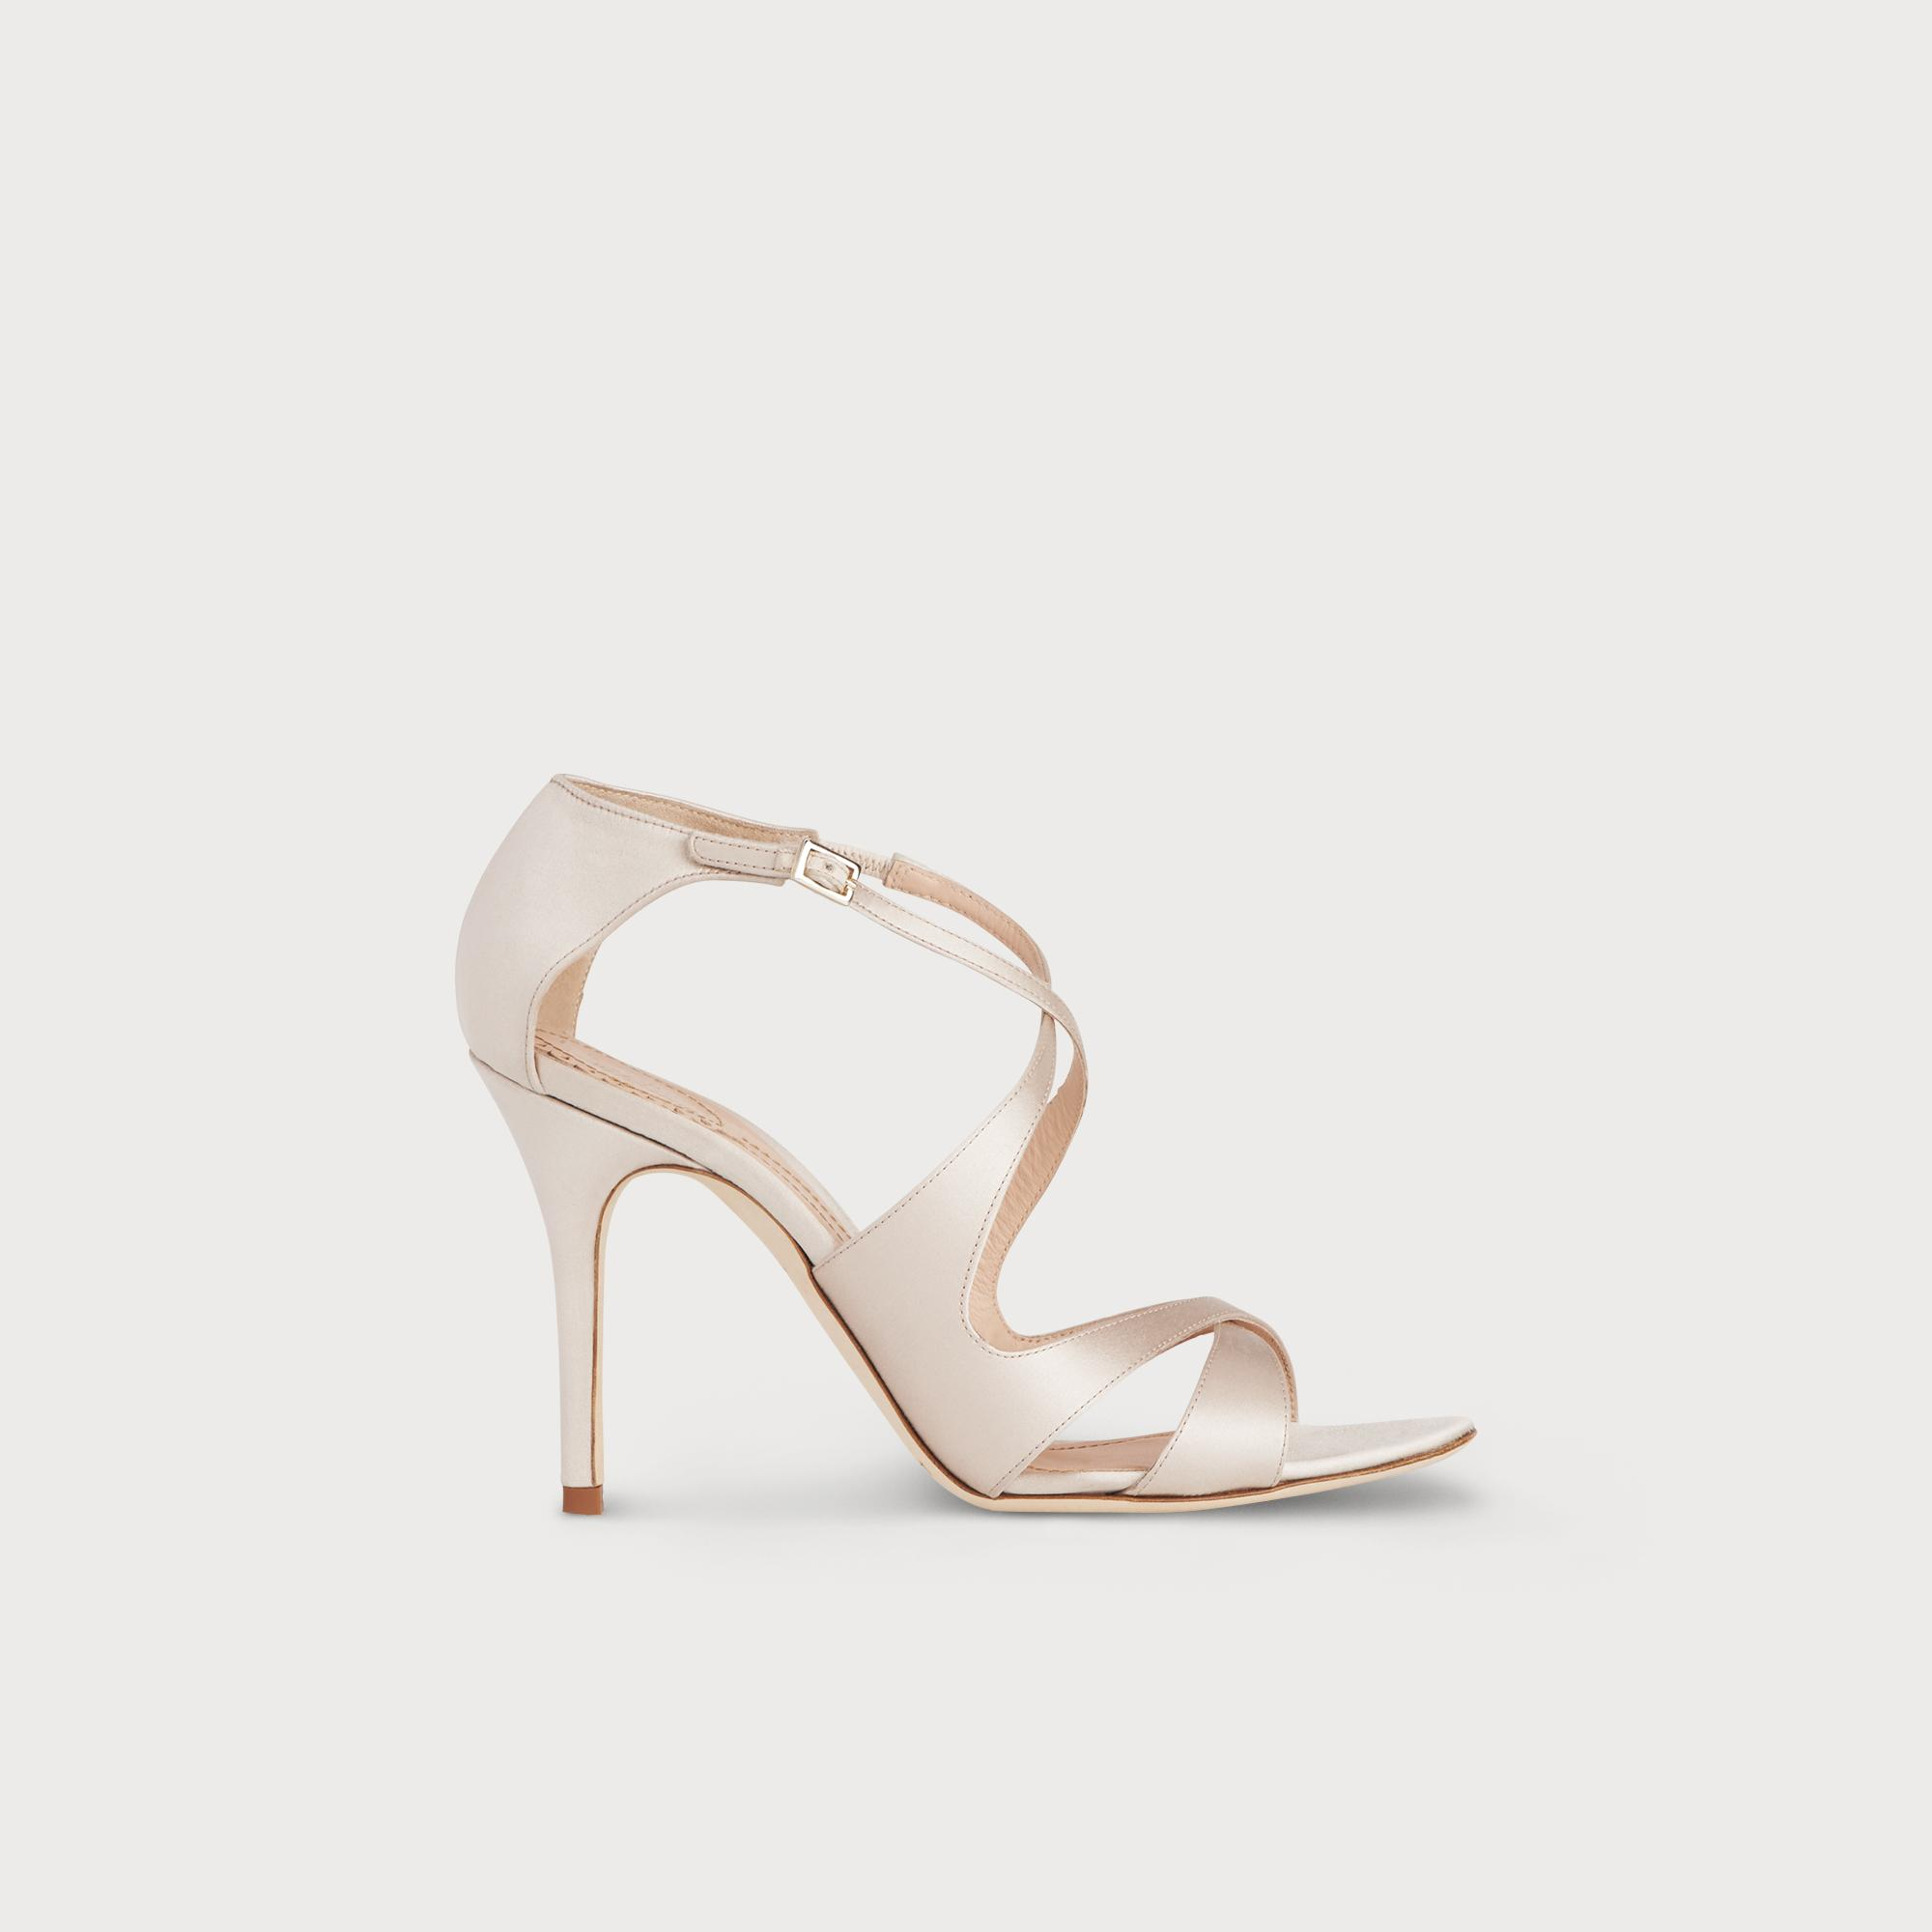 Brielle Satin Sandal